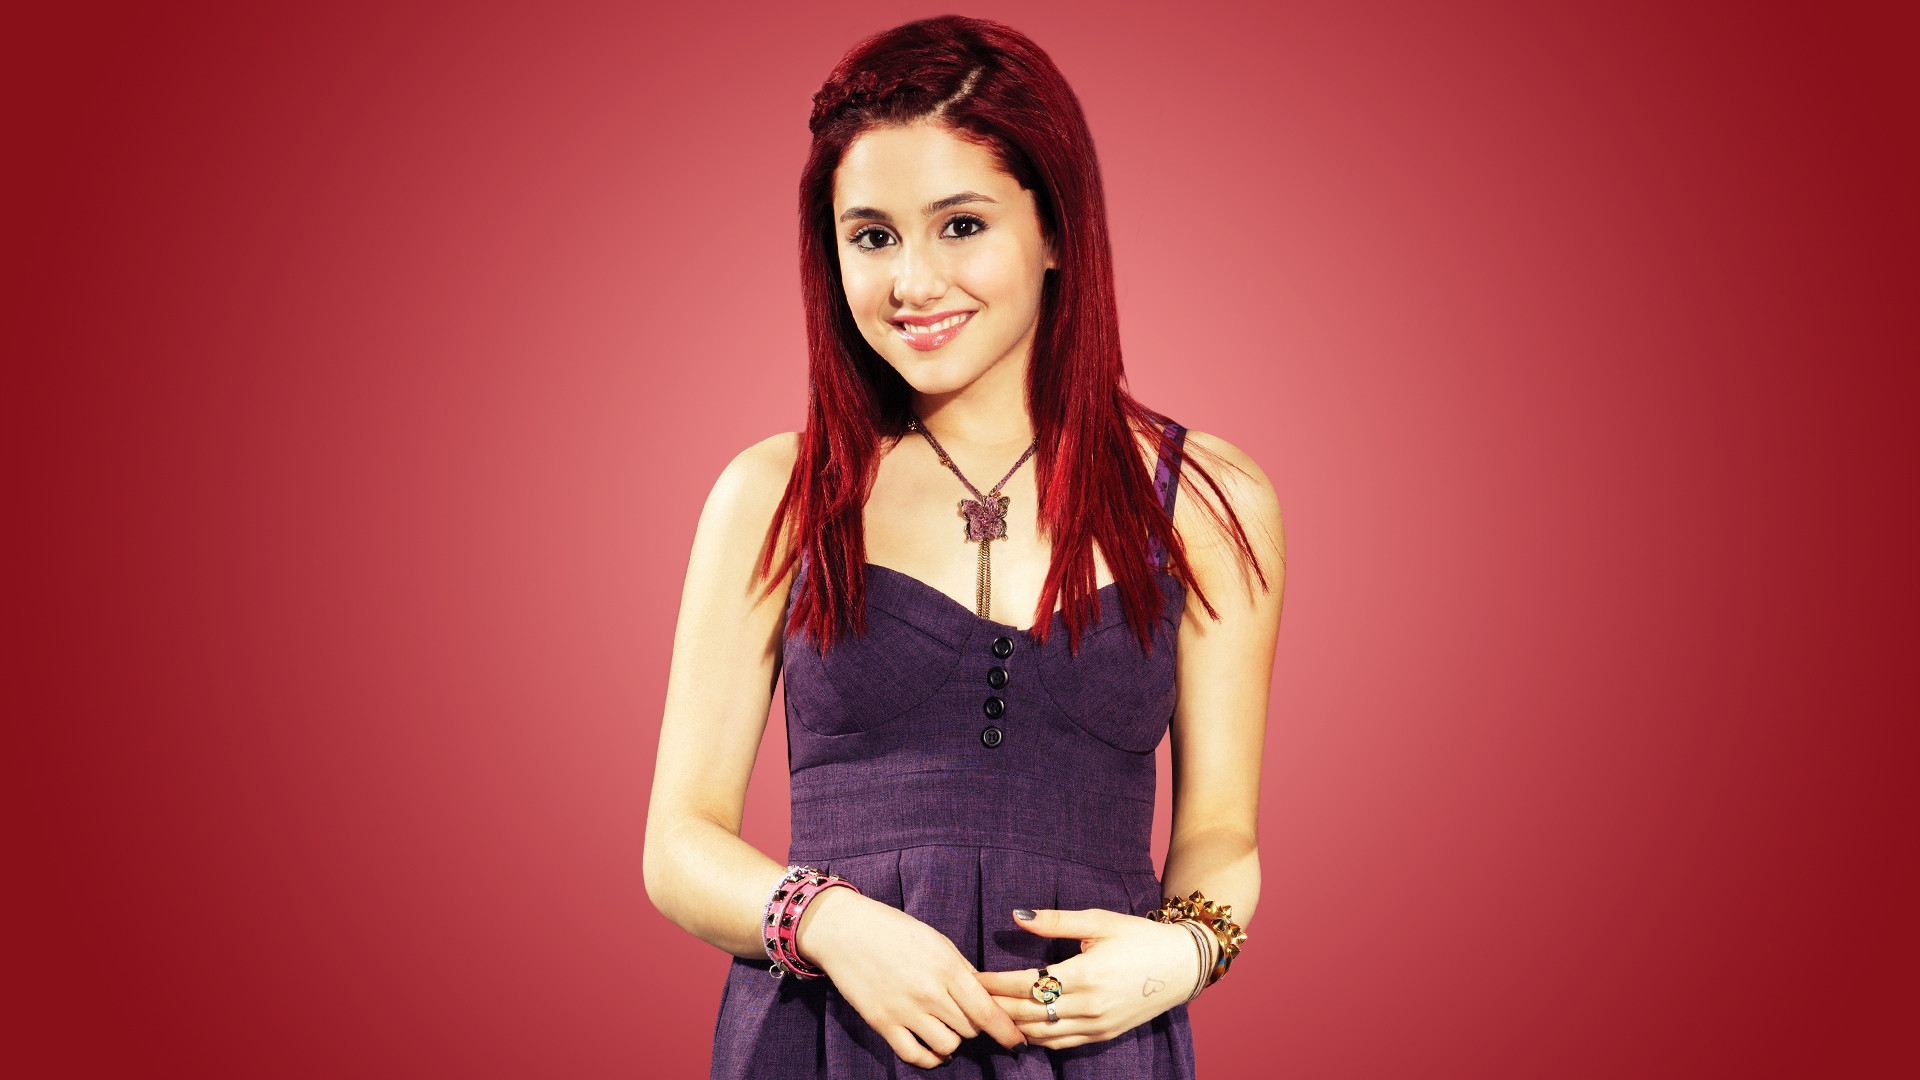 Ariana Grande HD desktop wallpapers - 496.5KB